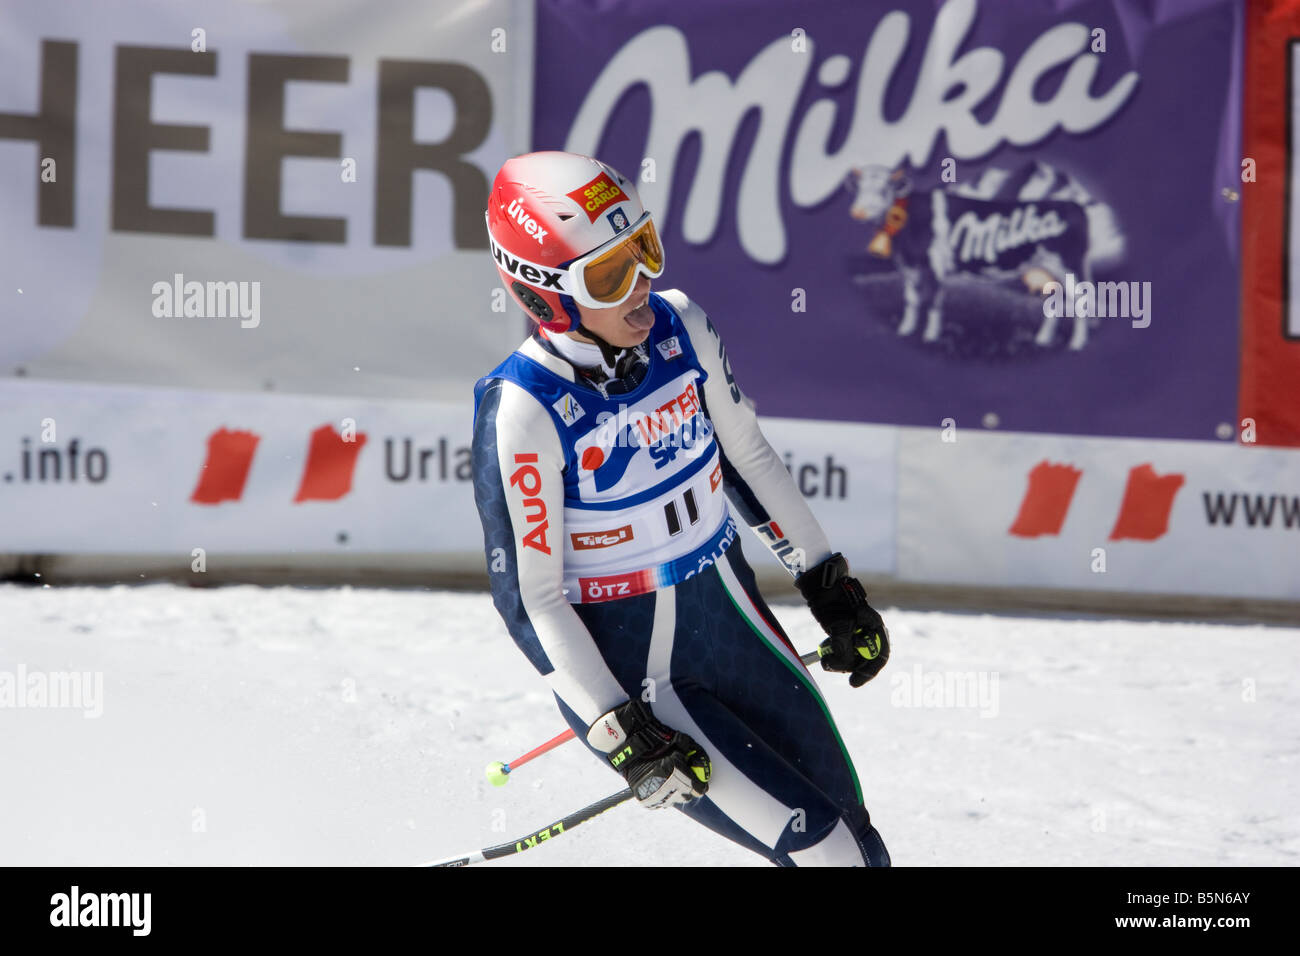 SOELDEN AUSTRIA OCT 25 Nicole Guise ITA competing in the womens giant slalom race at the Rettenbach Glacier - Stock Image